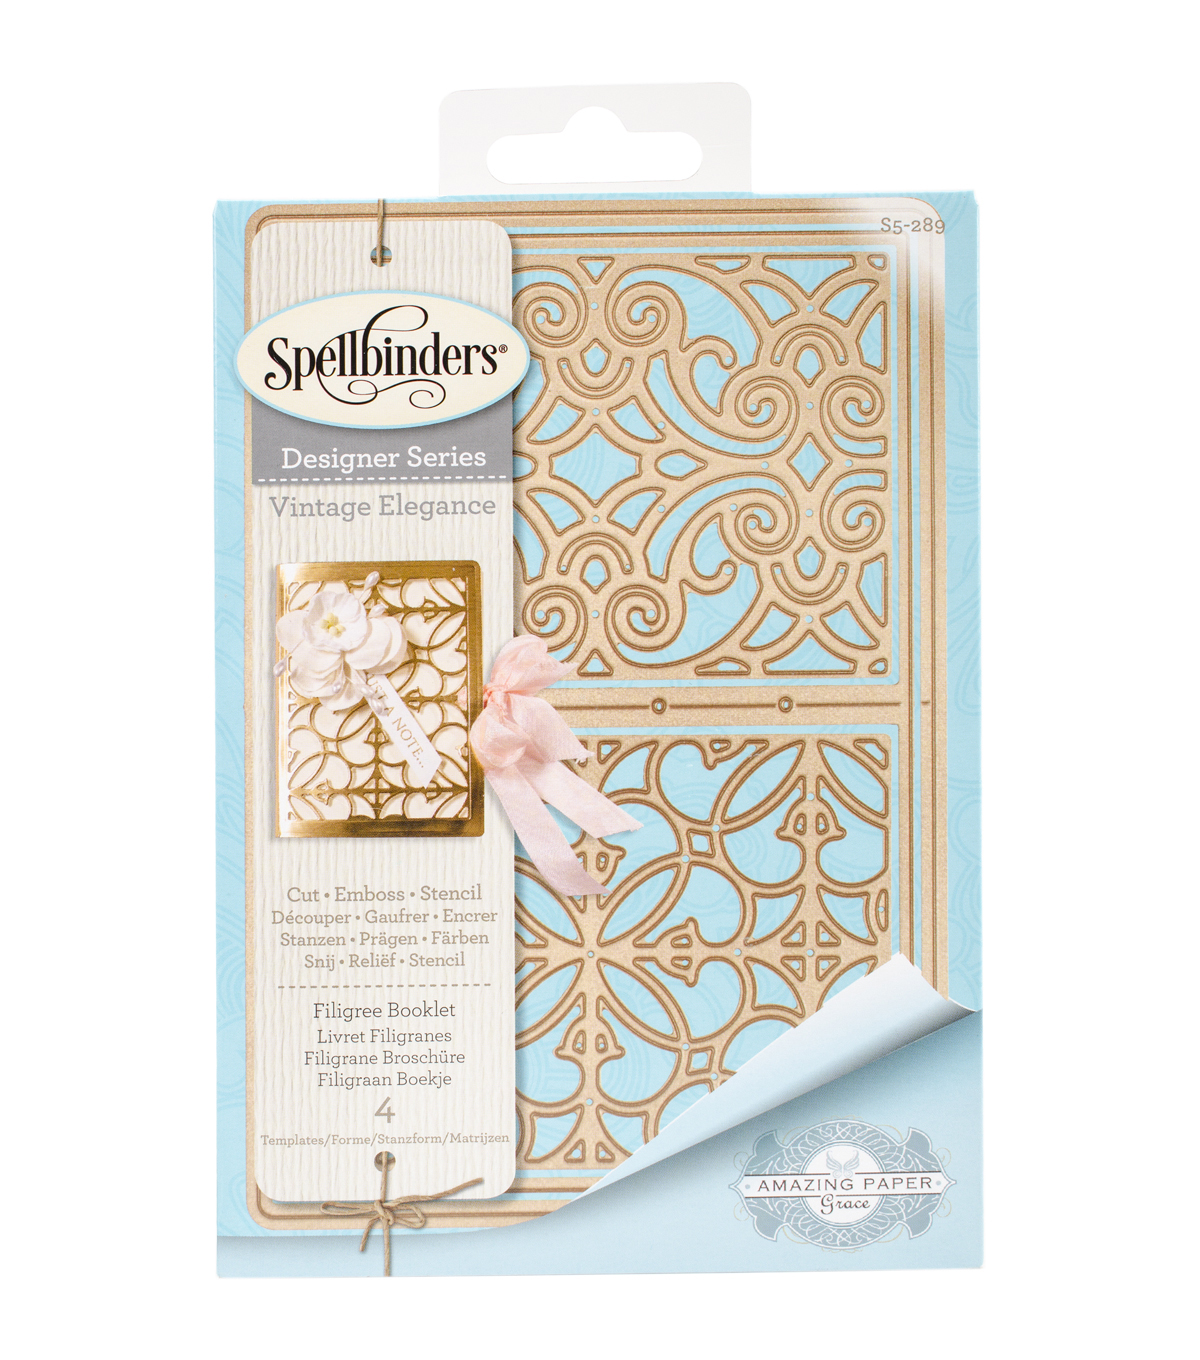 Spellbinders Shapeabilities Etched Die-Filigree Booklet